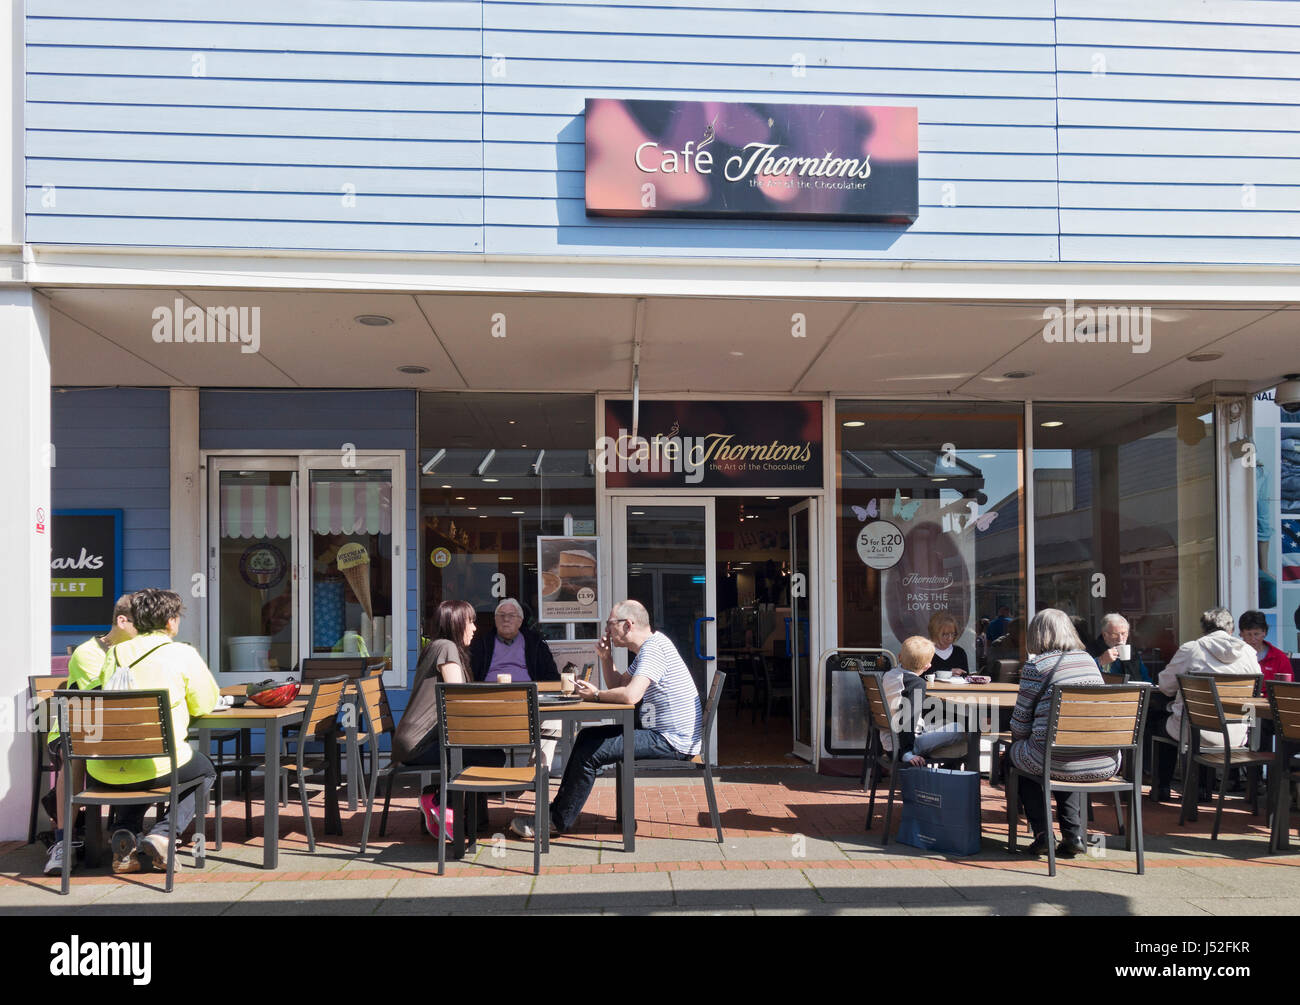 Thorntons café and confectionary shop at Royal Quays shopping outlet, North Shields, UK - Stock Image